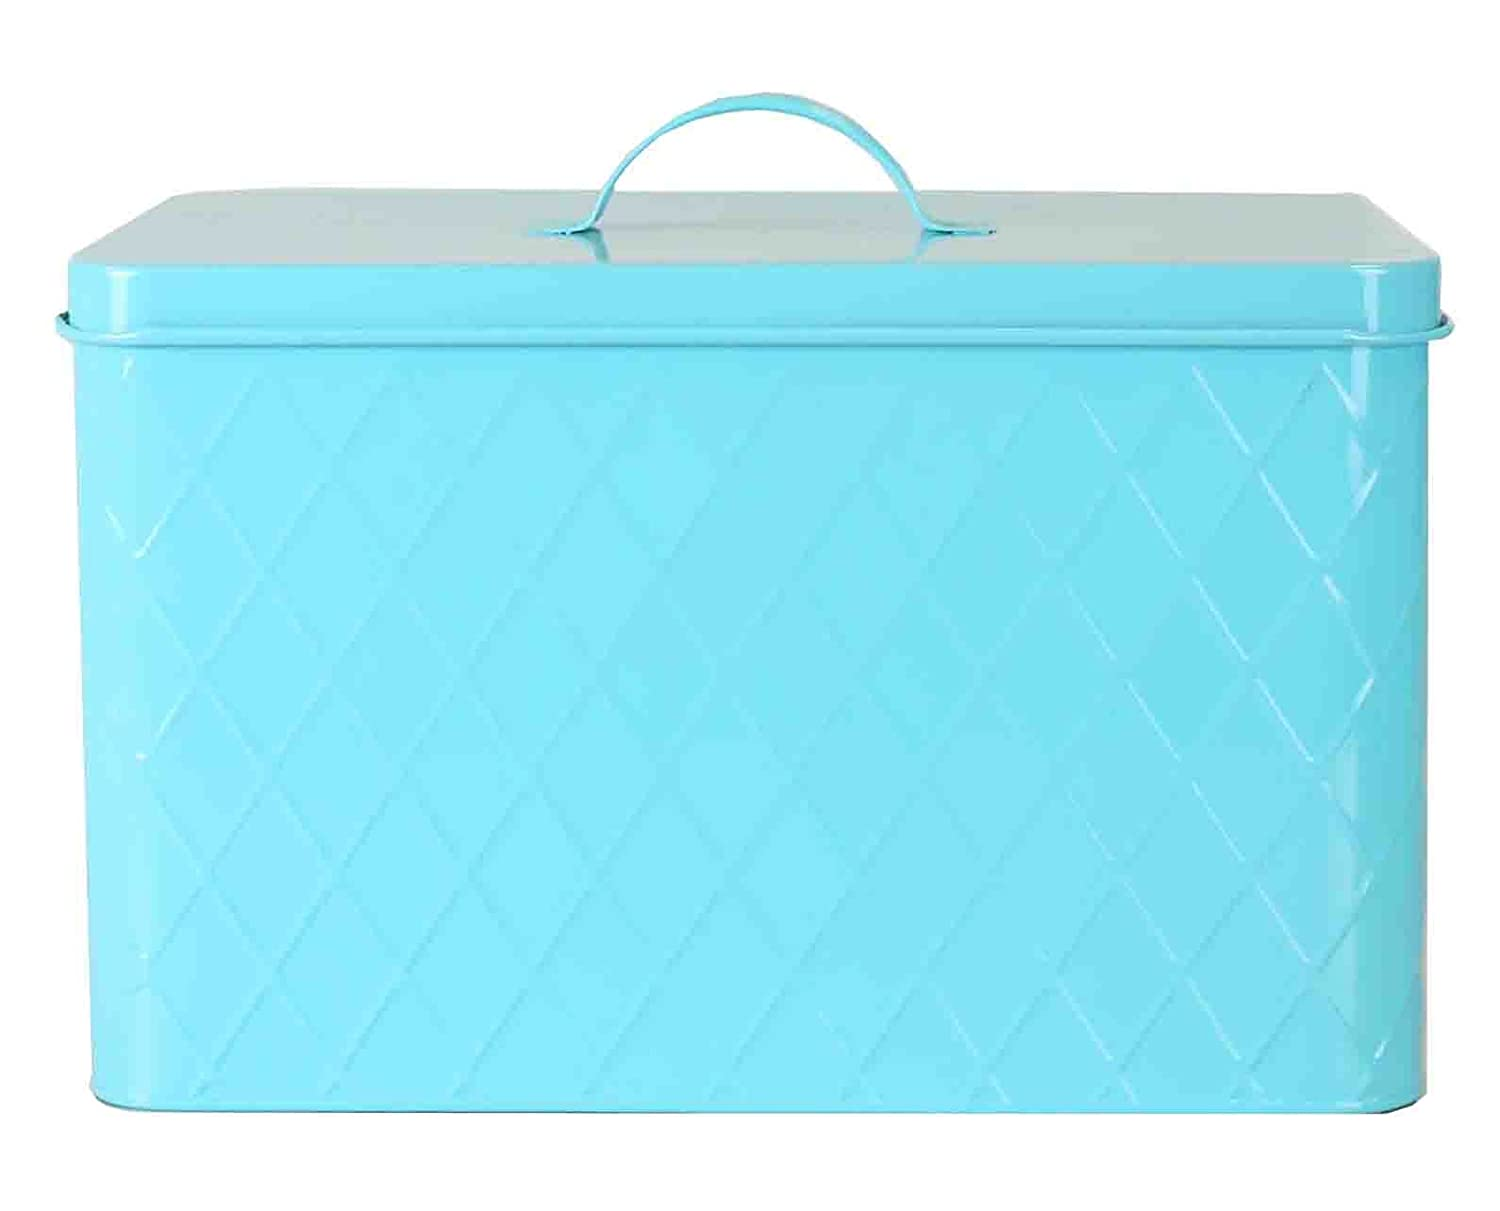 Home Basics Vintage Tin Bread Box, Argyle Pattern, Turquoise, 13.25x8.5x10 Inches HDS Trading Corp. CS47385